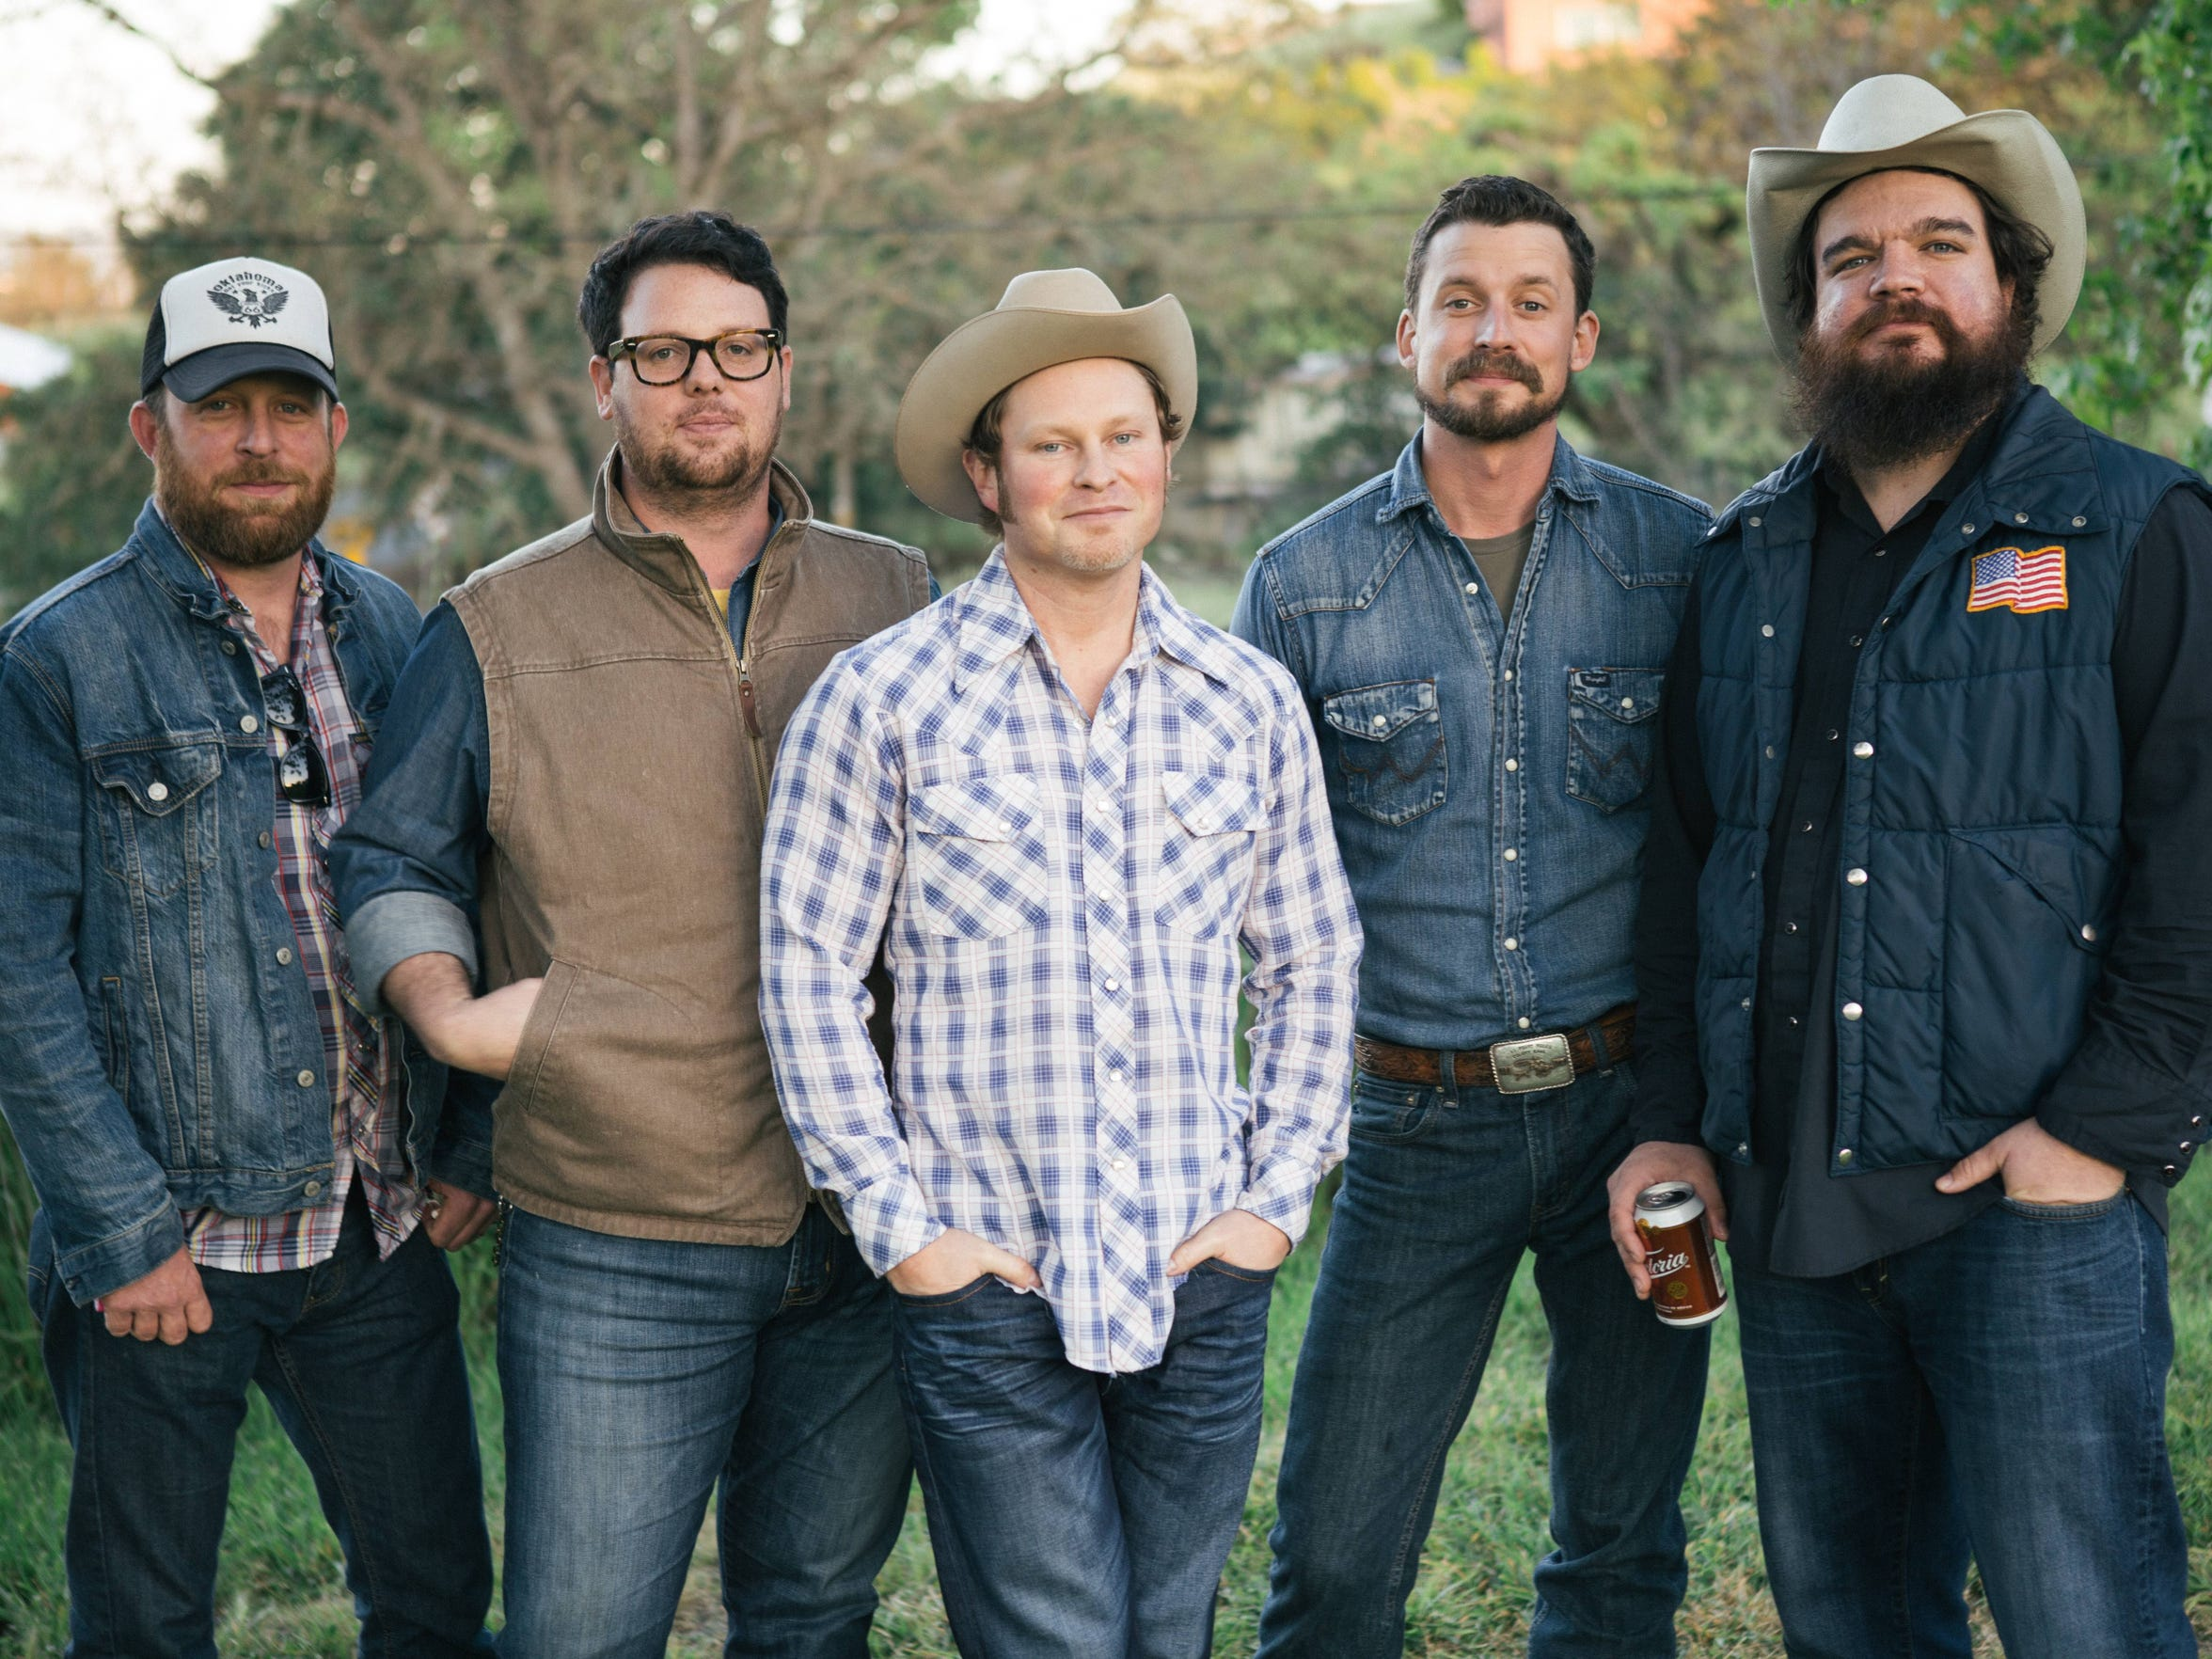 Turnpike Troubadours headline Saturday's live music line-up at the SNM State Fair.